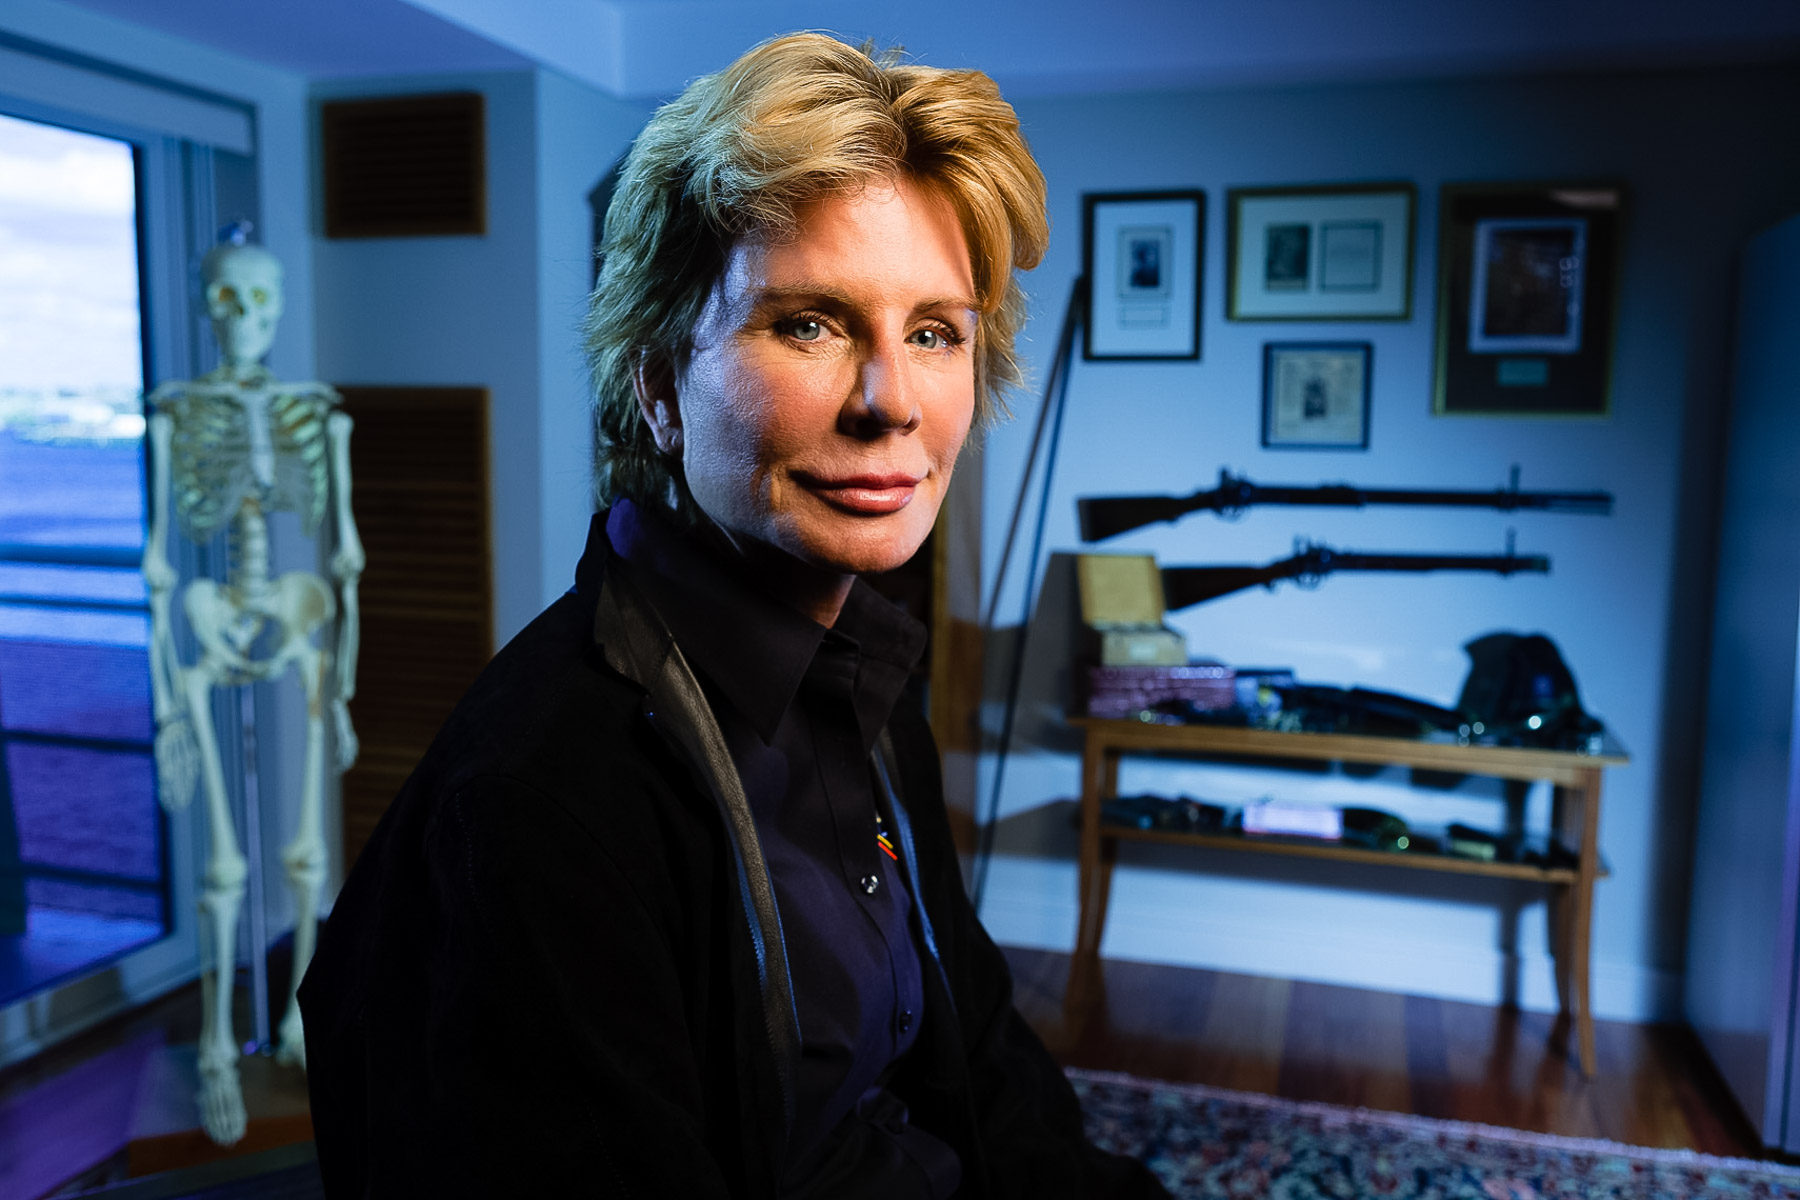 PATRICIA CORNWELL • AUTHOR